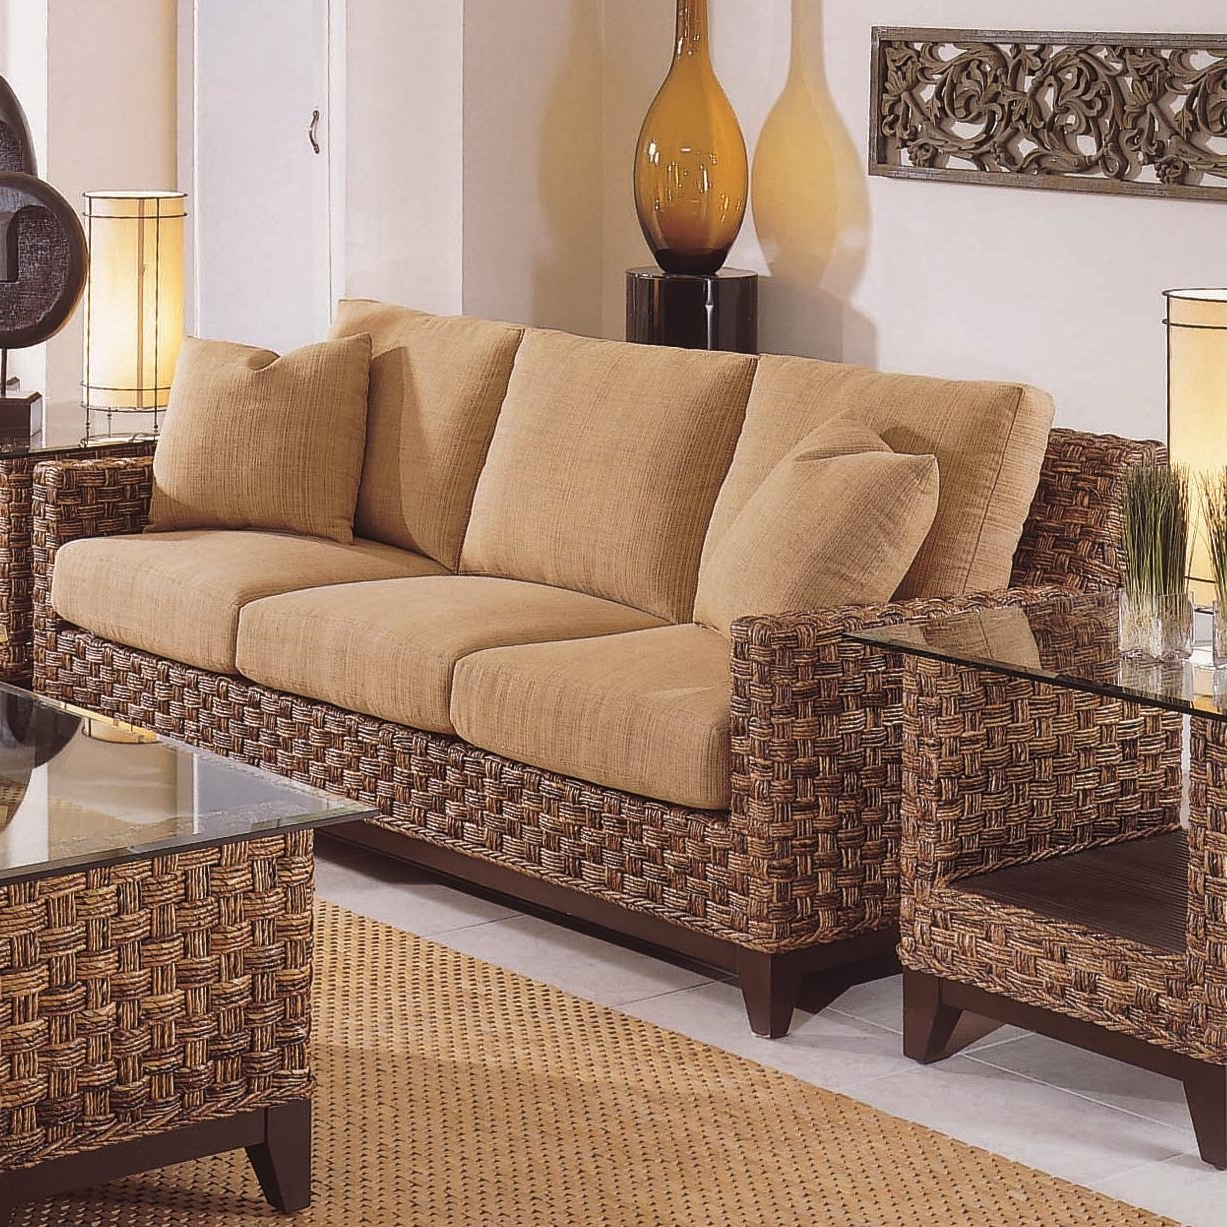 Well Known Braxton Sofas Pertaining To Braxton Culler Tribeca 2960 Modern Wicker Three Seat Queen Sleeper (View 5 of 15)